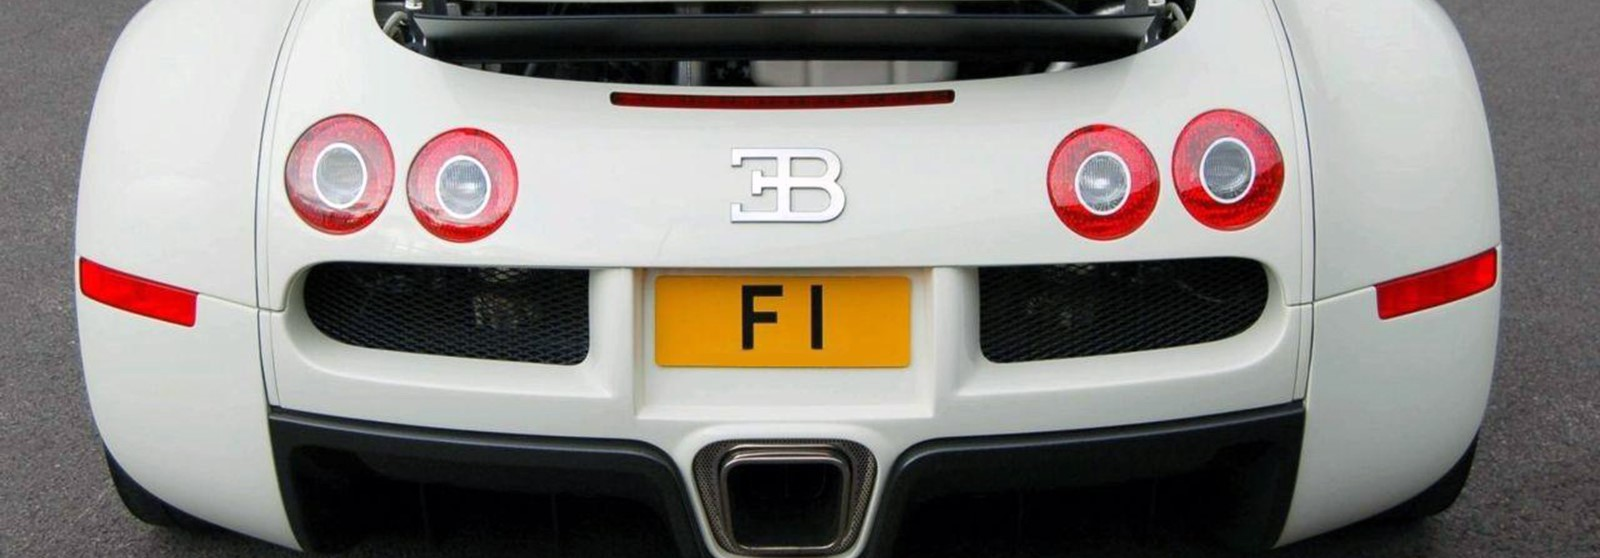 Bugatti car fitted with one of most expensive number plates. F1 registration plate .